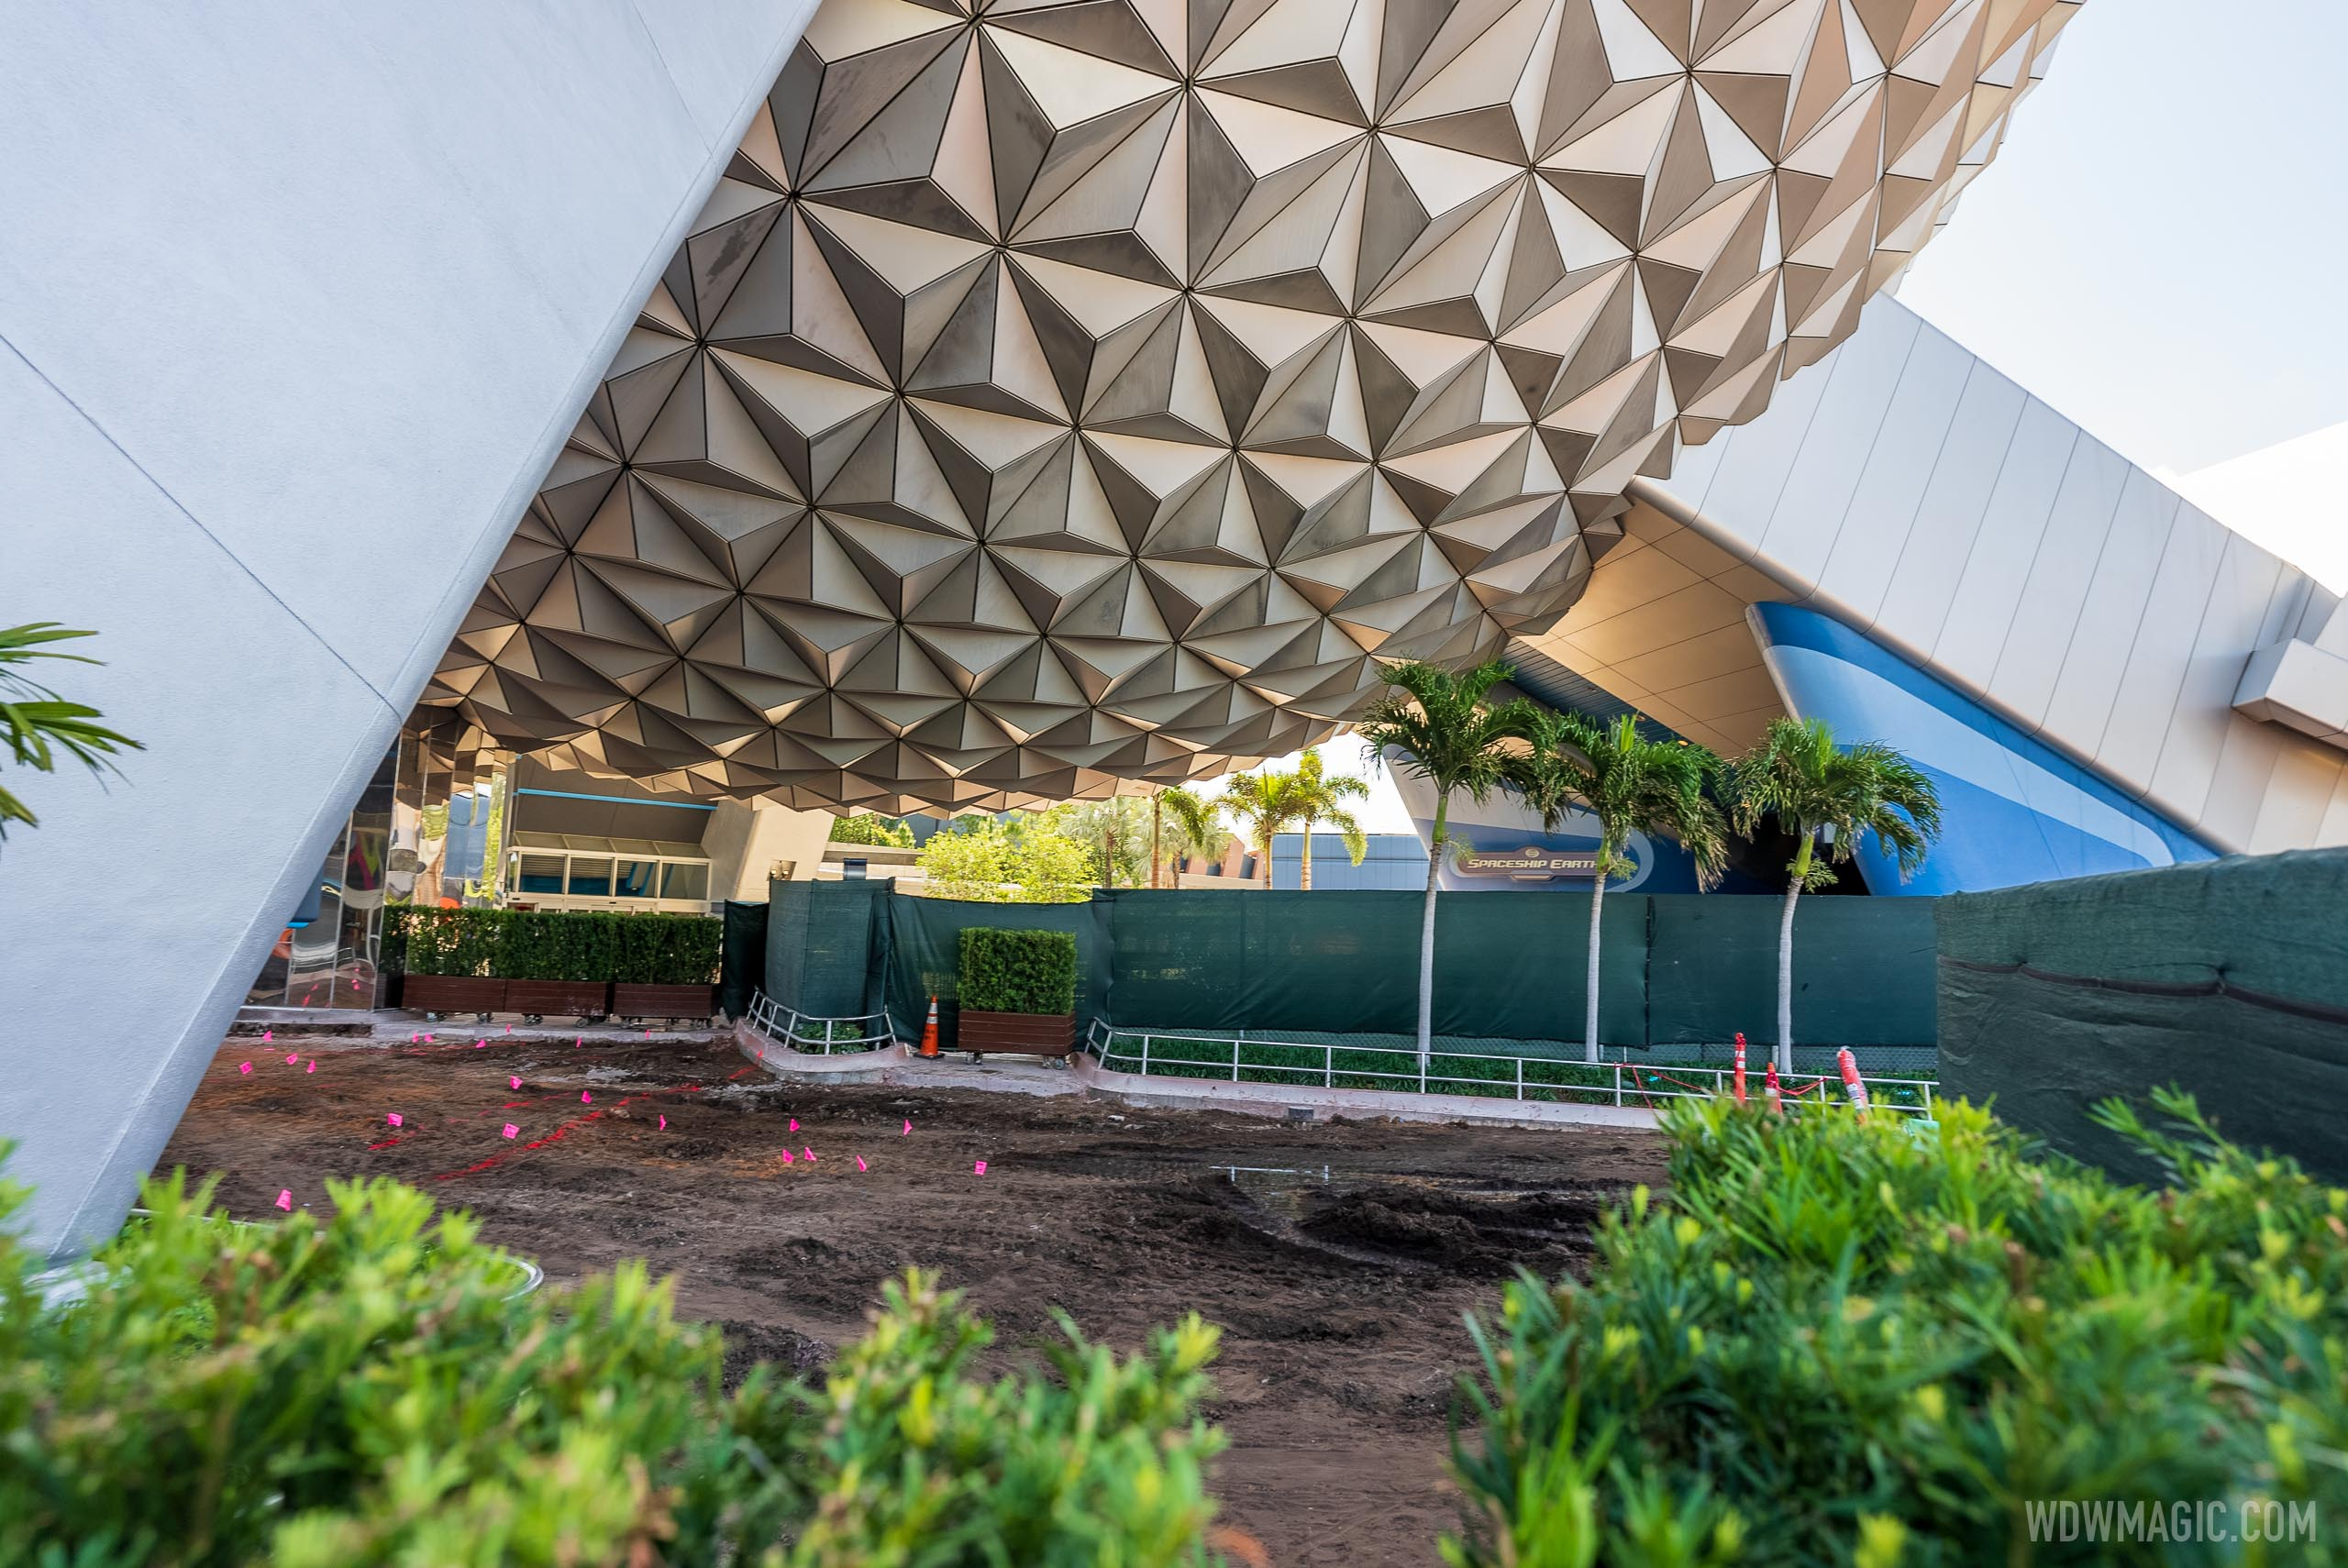 A look at the concrete work underway beneath Spaceship Earth alongside 'Pin Traders and Camera Center'